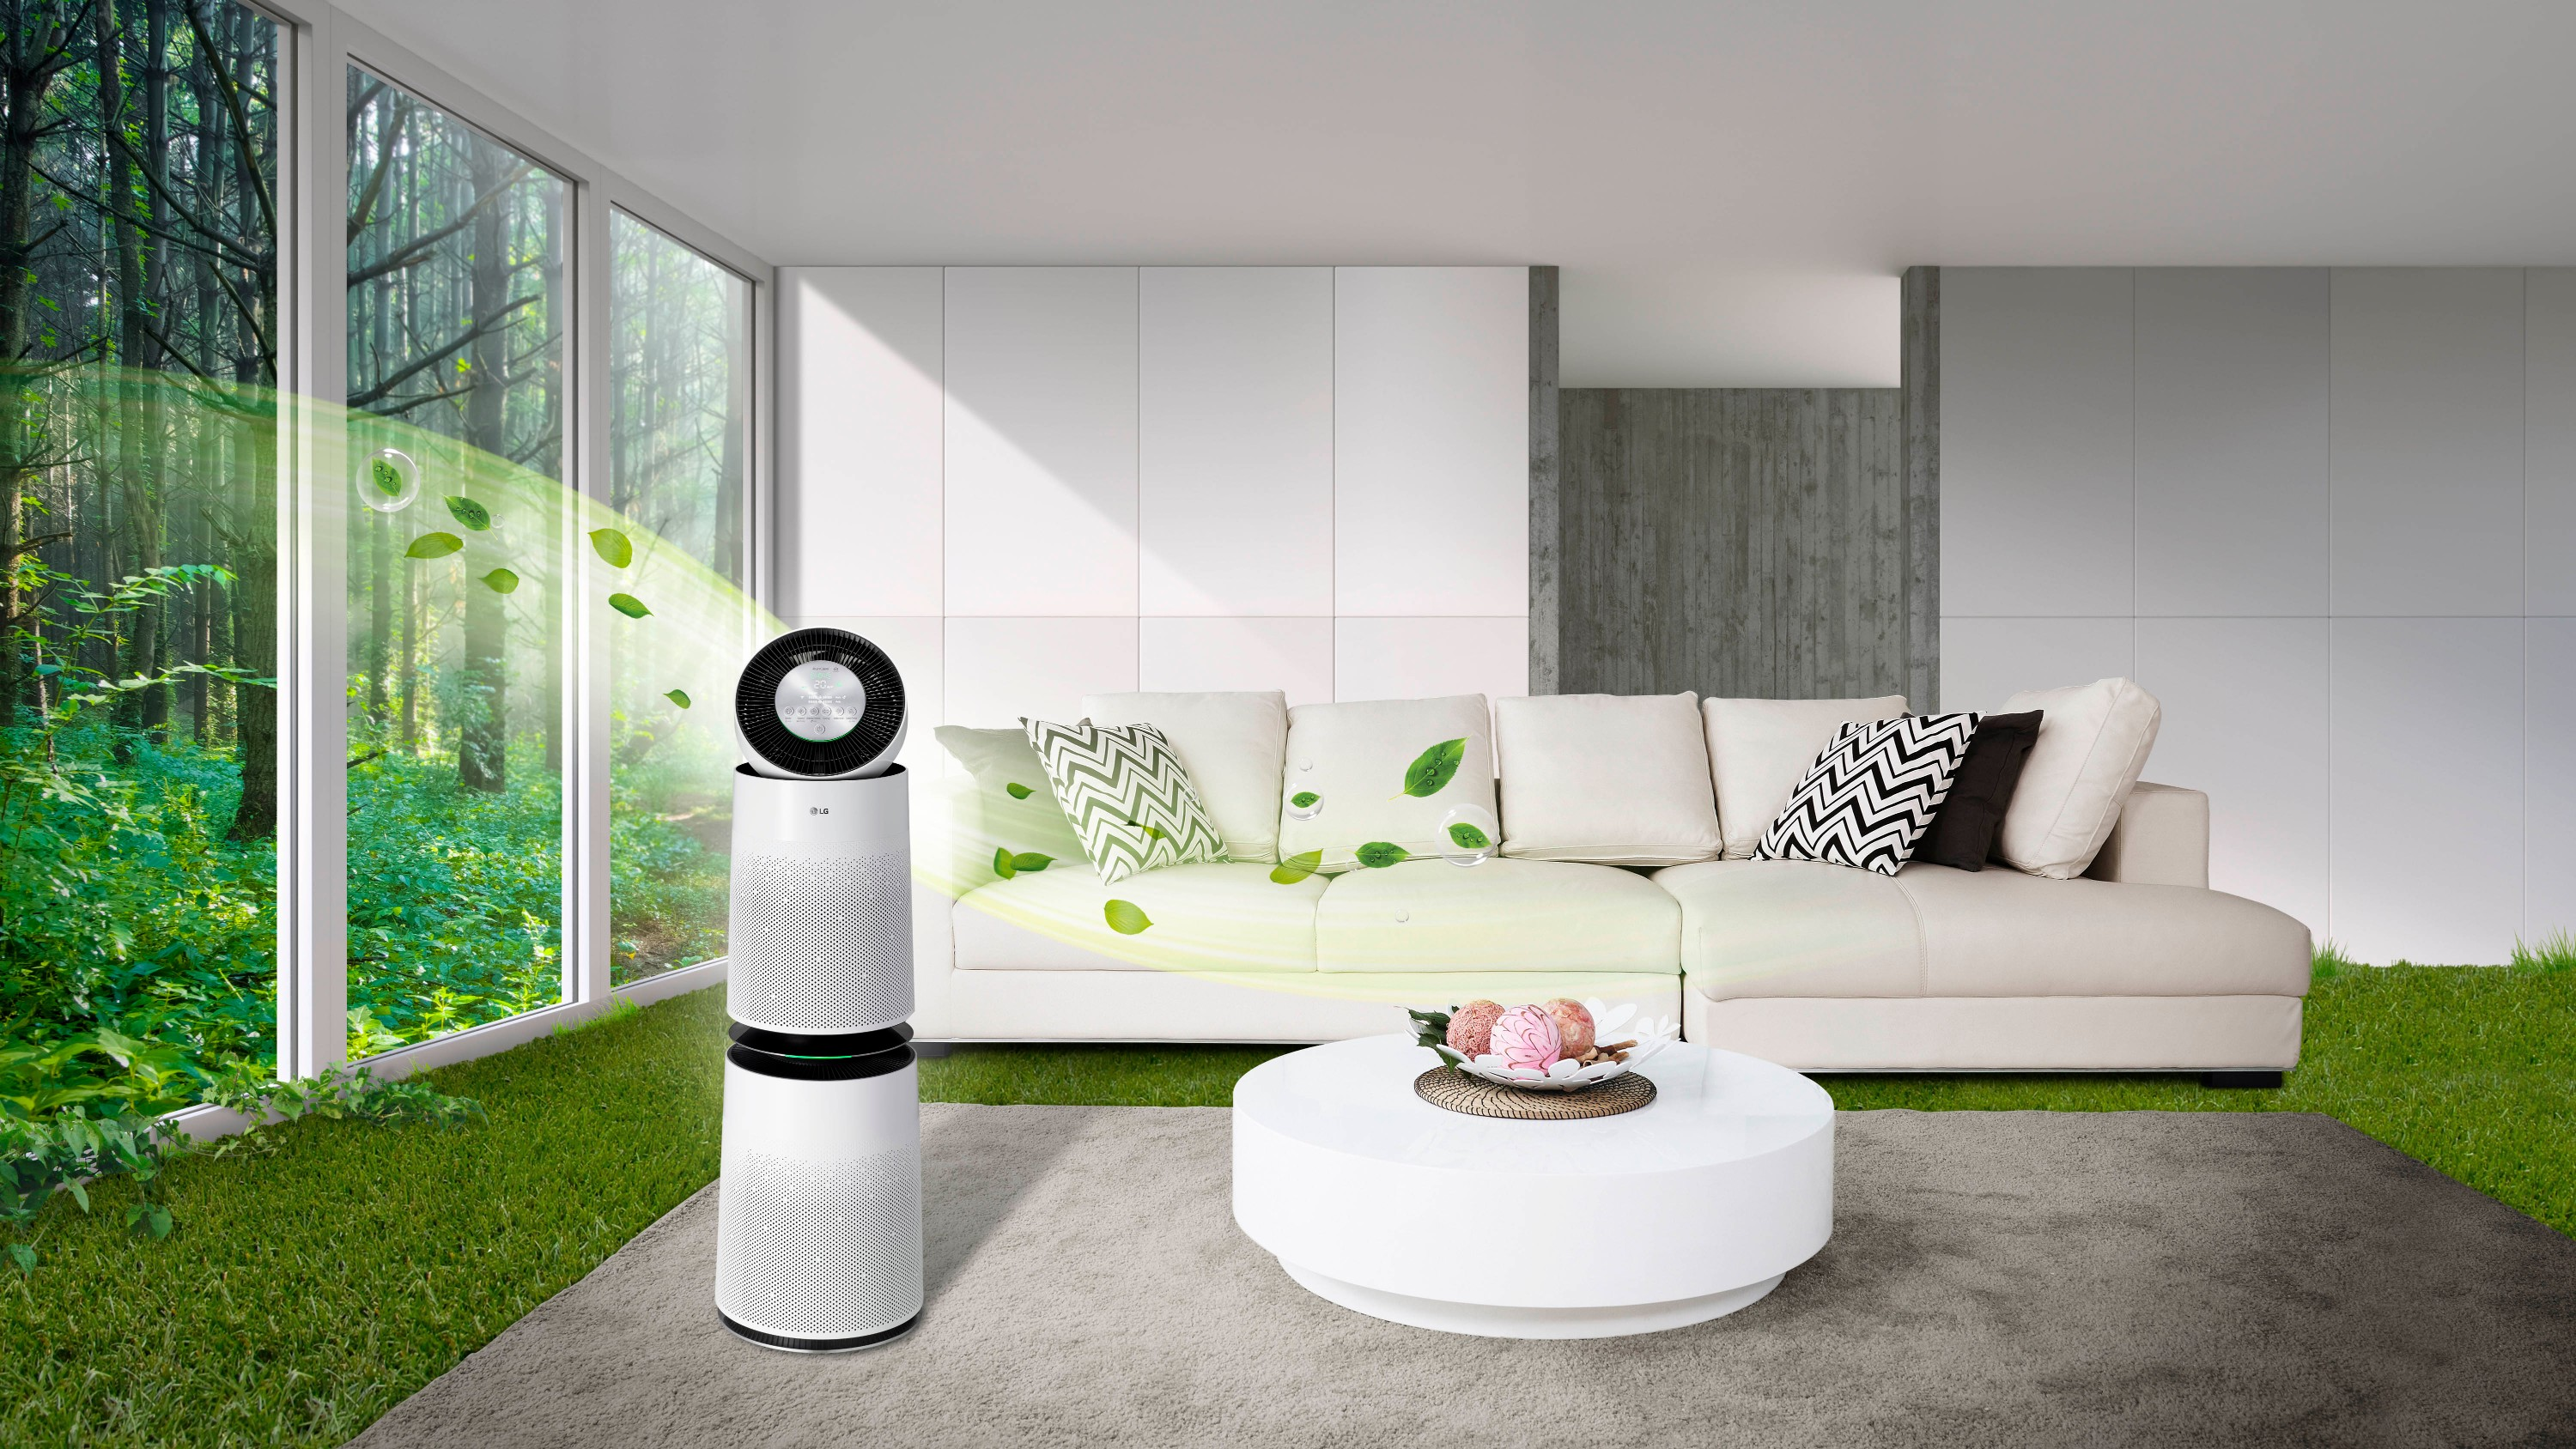 LG PuriCare Air Purifiers focuses on \'Health for all\' With ...